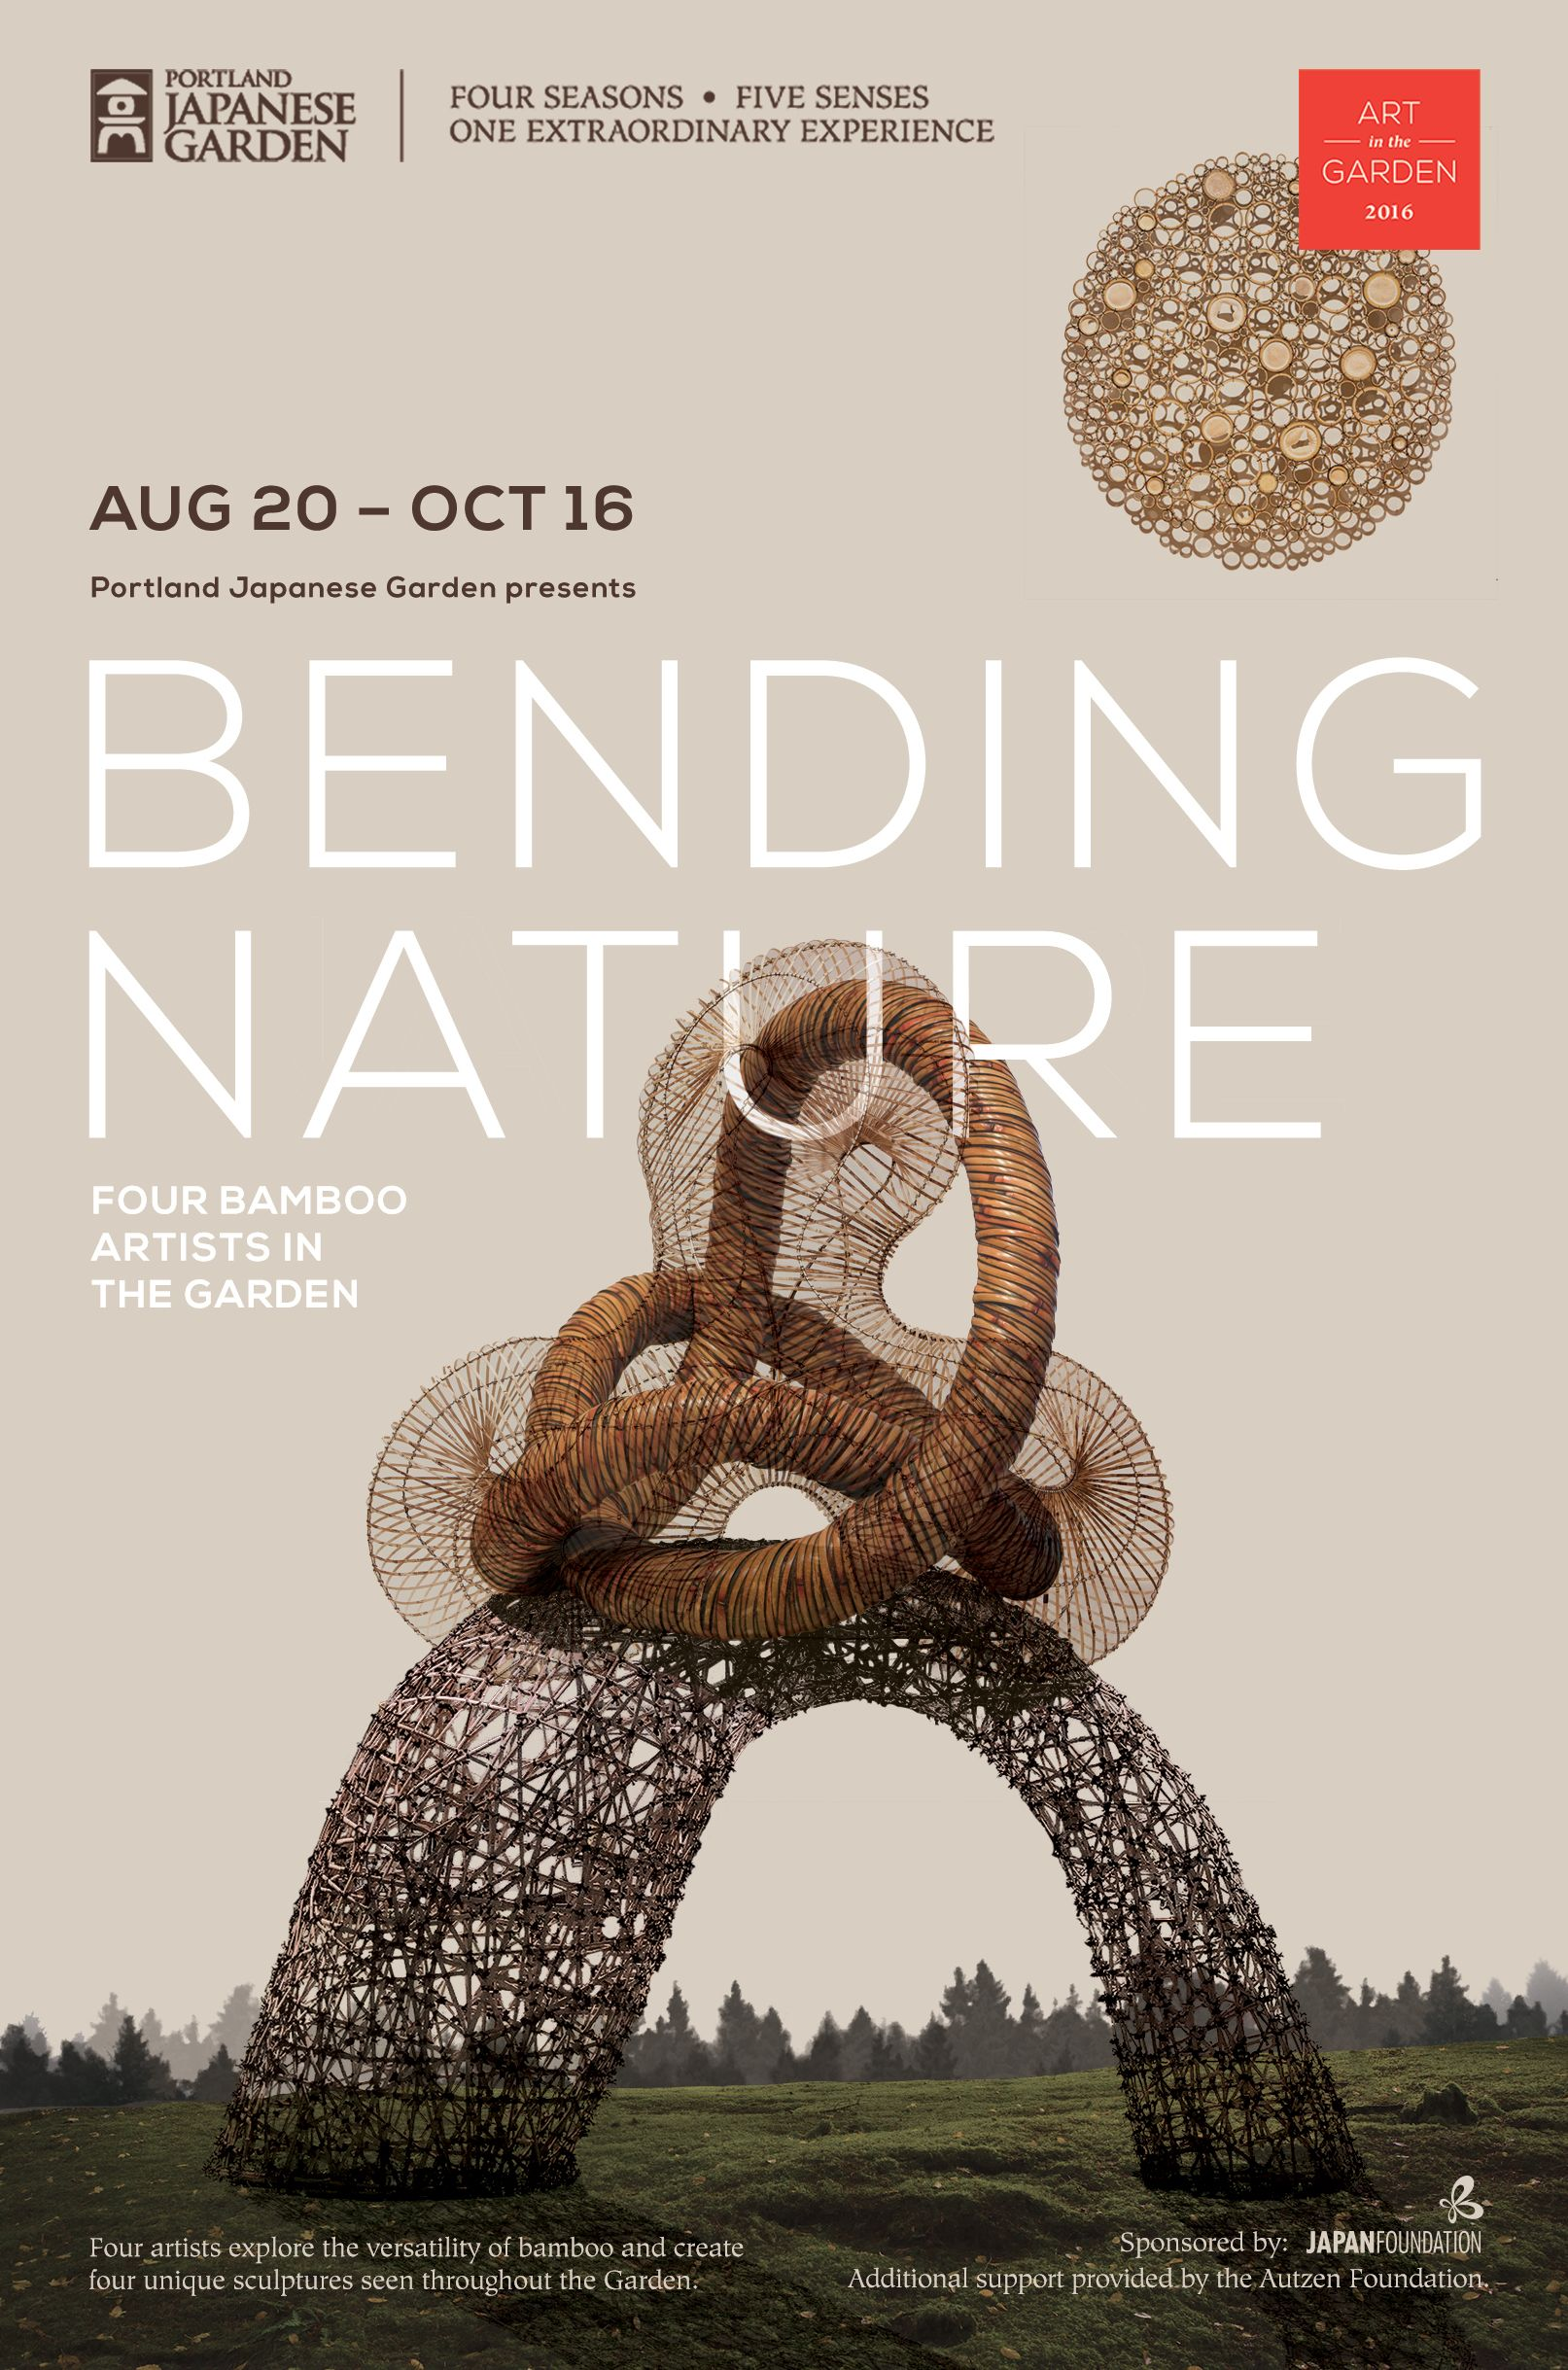 bending nature four bamboo artists in the garden - Bamboo Garden 2016